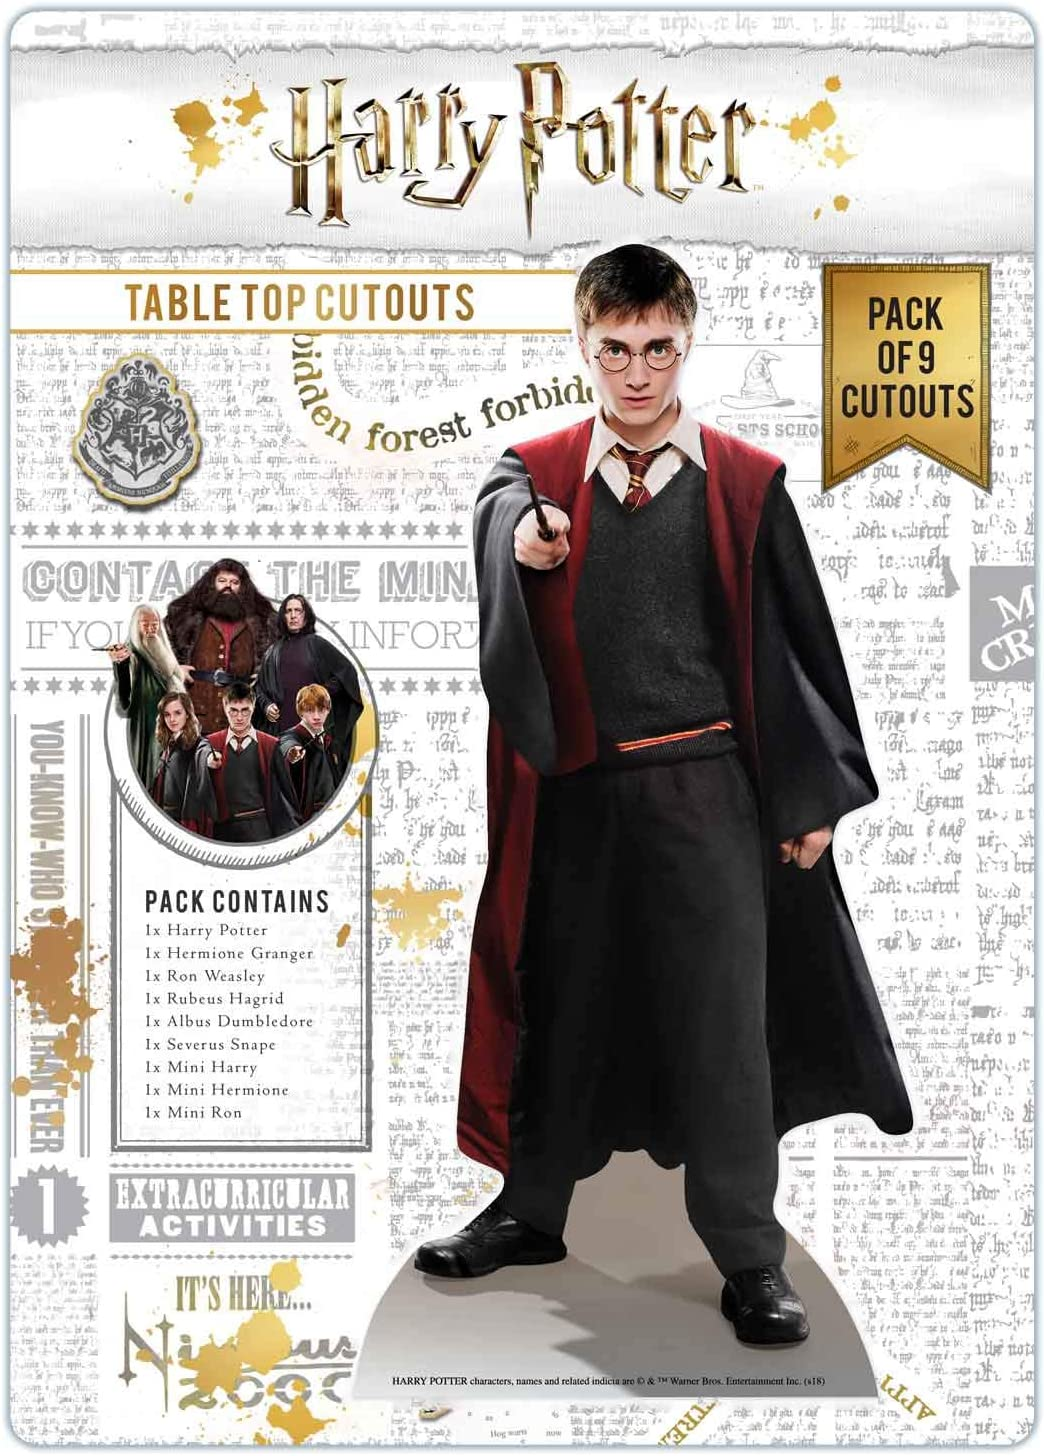 Star Cutouts Ltd TT008 Wizarding World Desktop and Table Top Pack Perfect for Parties, Harry Potter Room Accessories and Collectors, Multicolour, Regular